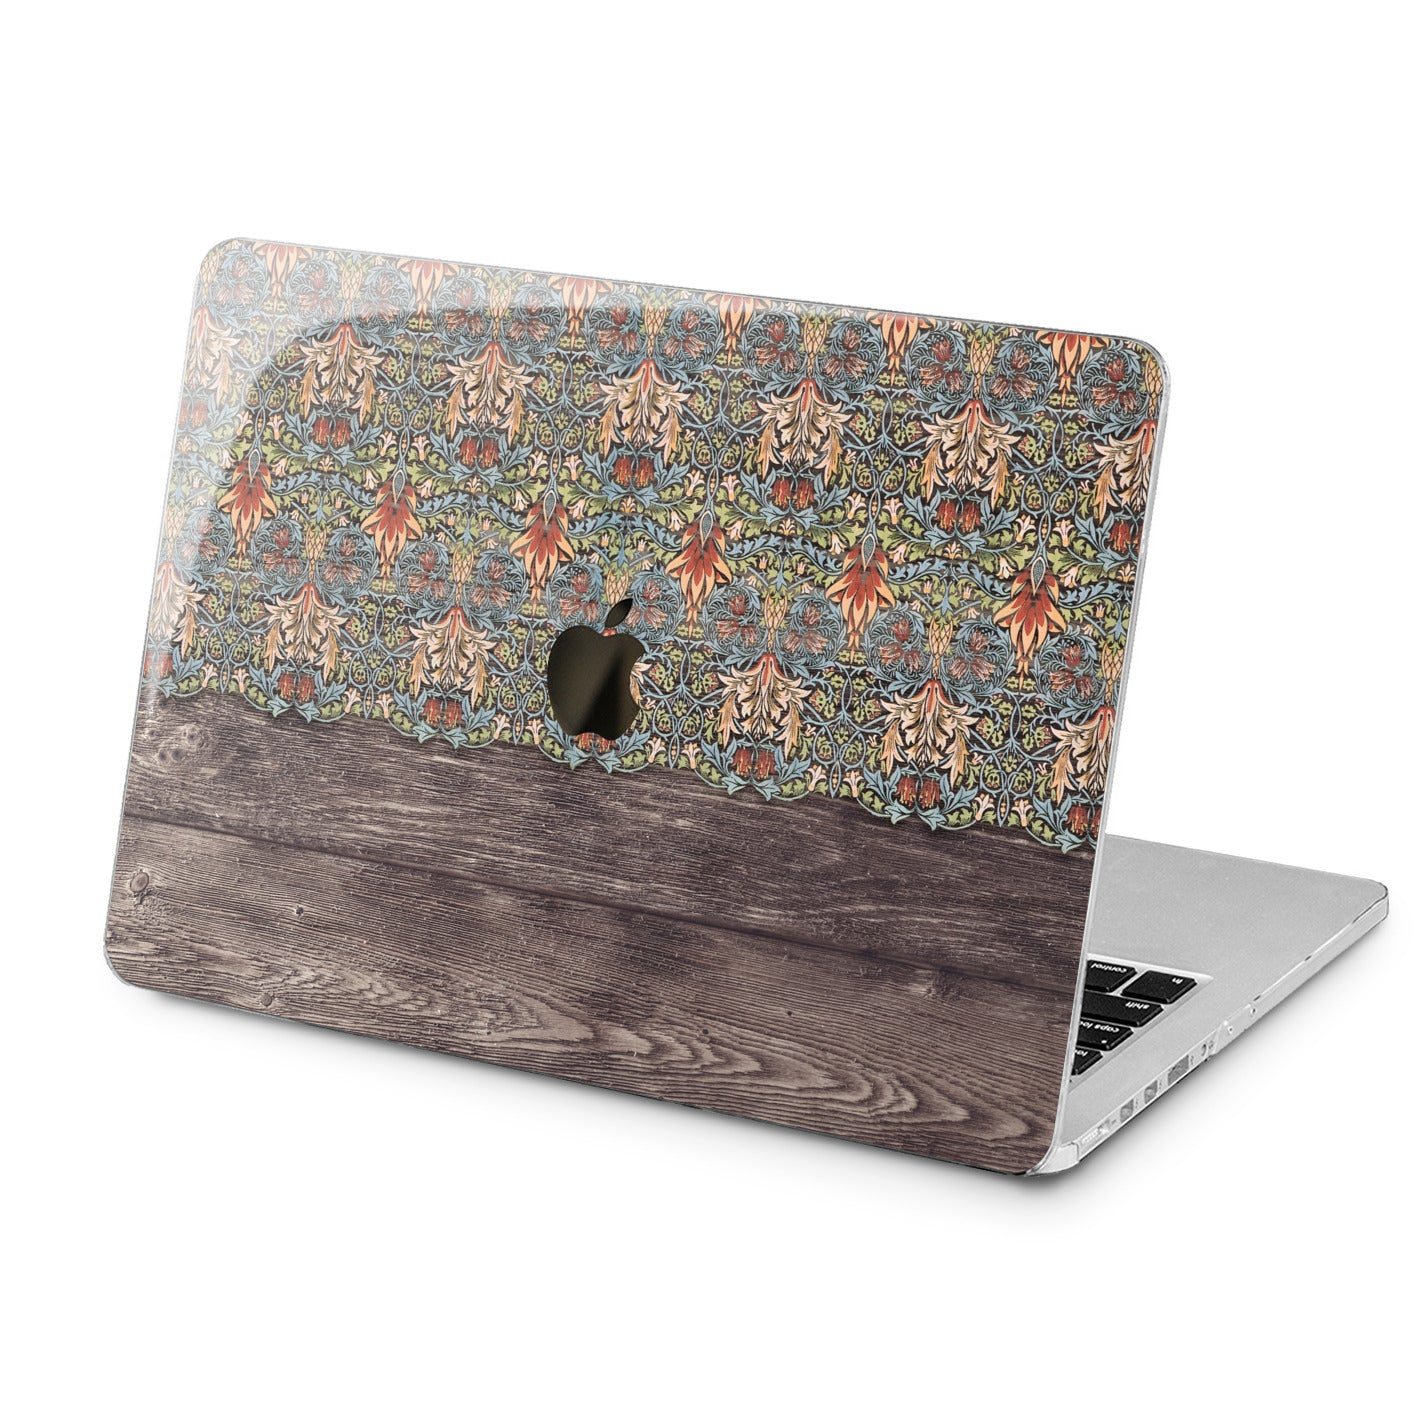 Lex Altern Lex Altern Boho Wood Case for your Laptop Apple Macbook.